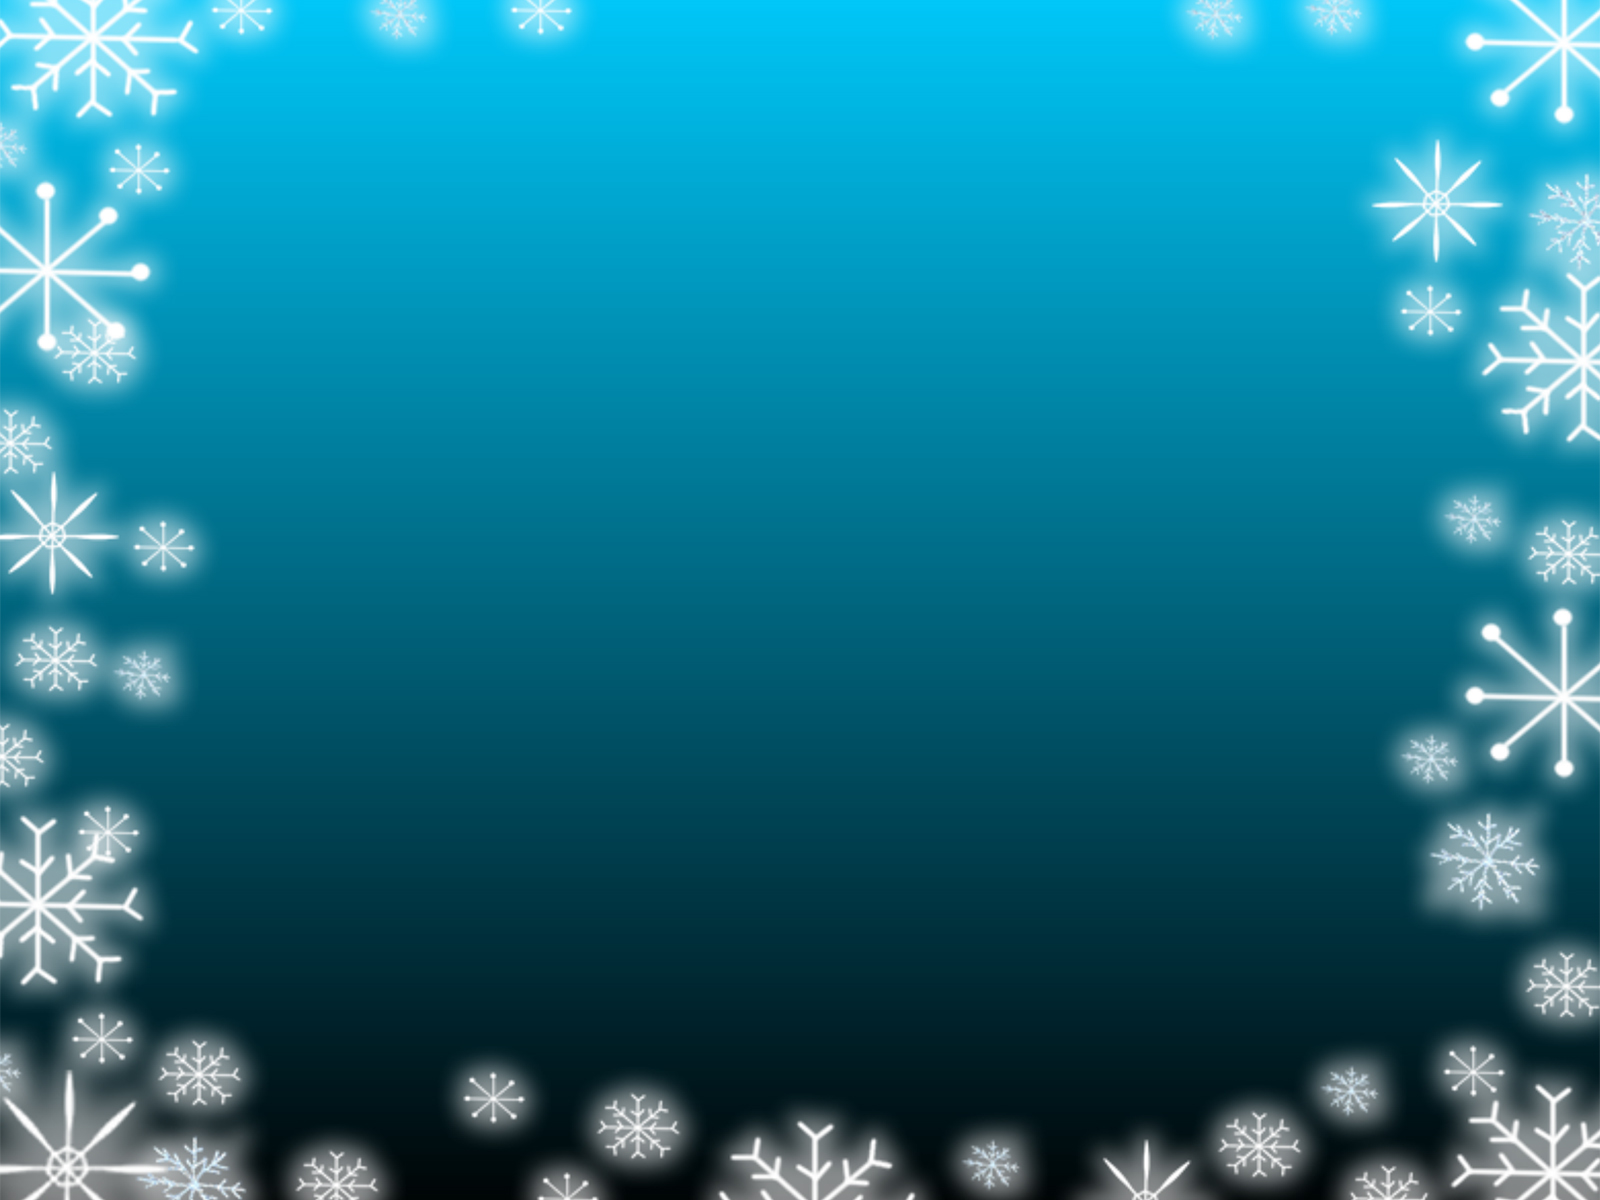 Blue Gradient Snowflake PPT Backgrounds